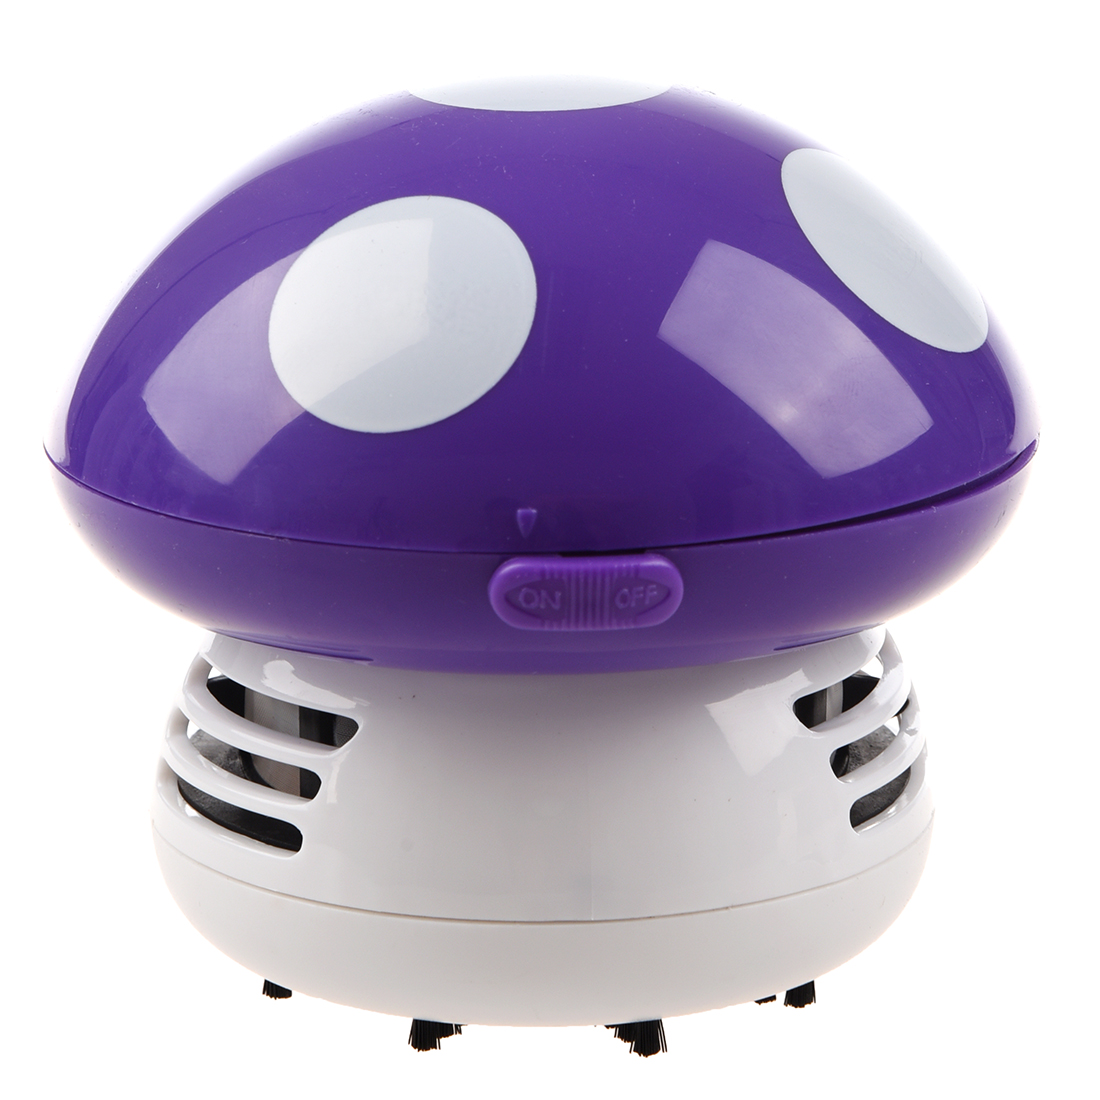 New Home Handheld Mushroom Shaped Mini Vacuum Cleaner Car Laptop keyboard Desktop Dust cleaner-purple 2 suction modes usb vacuum cleaner wireless handheld vacuum cleaner mini portable keyboard desktop cleaner for home office